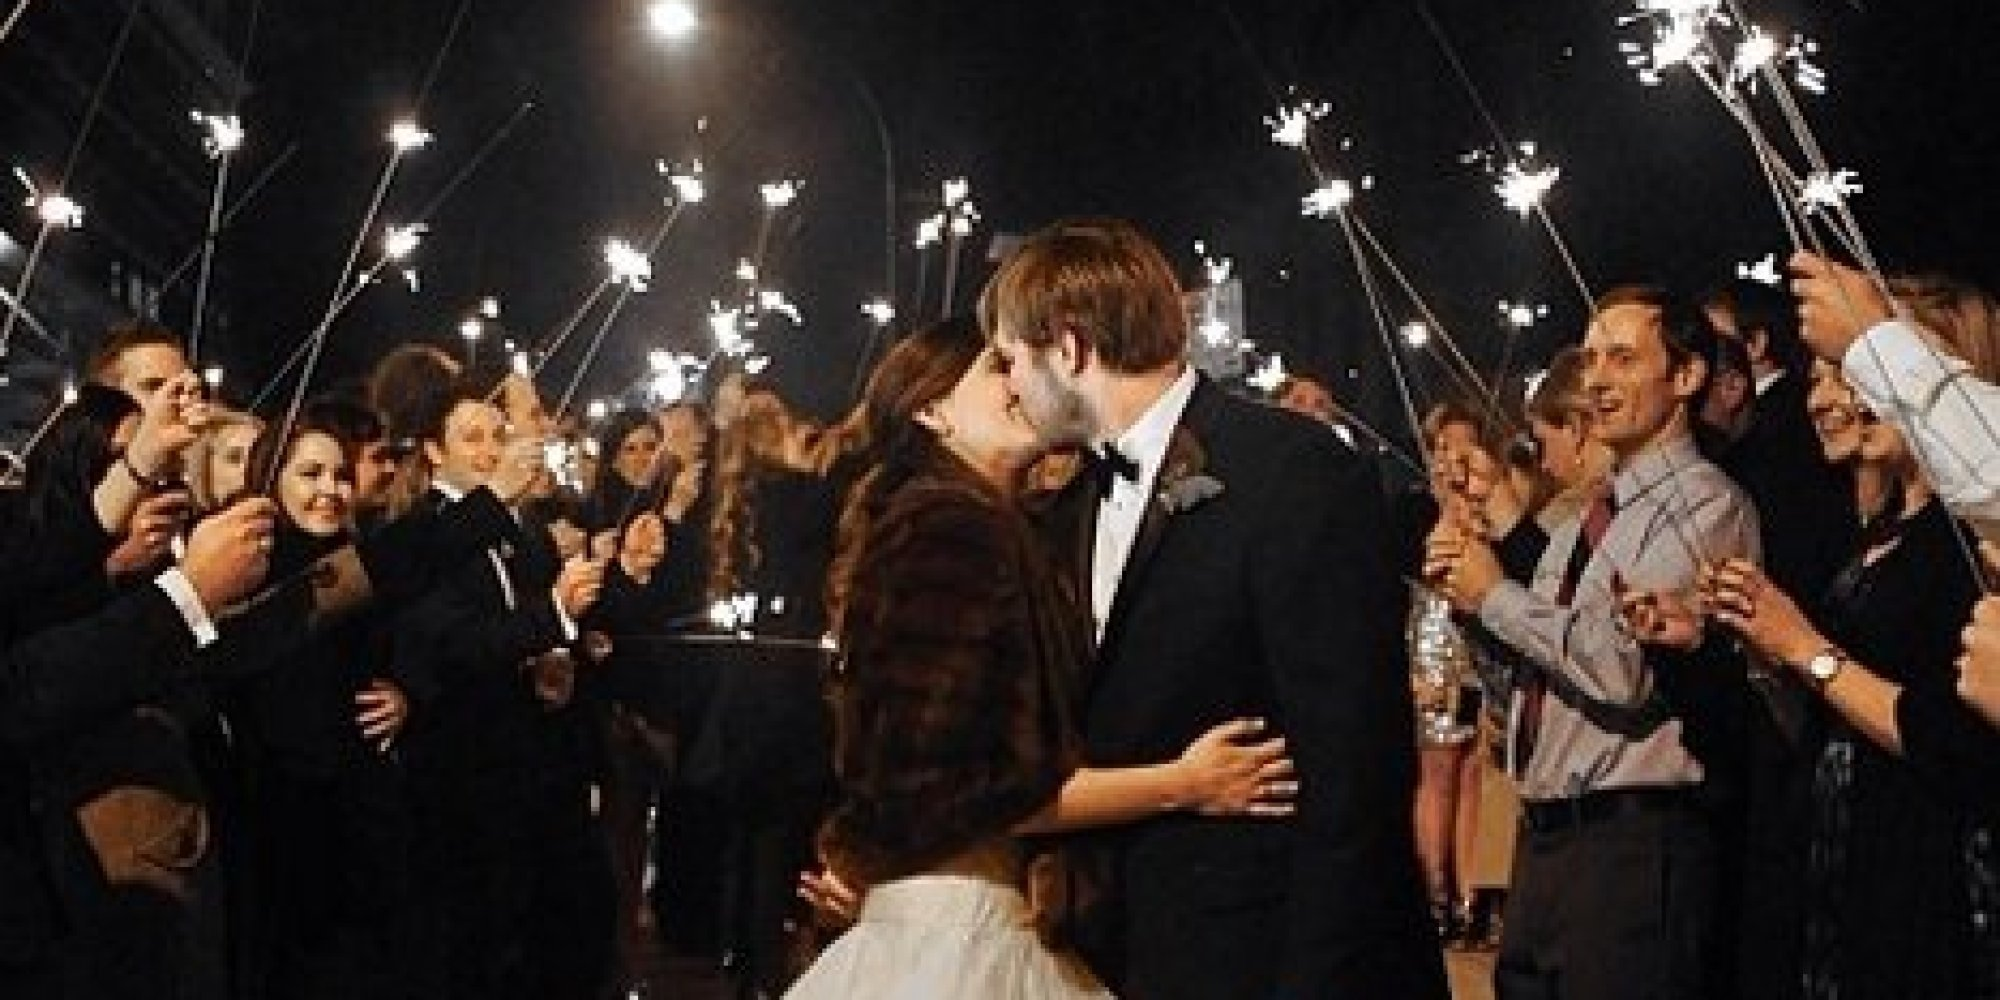 10 Fantastic New Years Eve Ideas For Couples 10 reasons you should consider a new years eve wedding huffpost 1 2021